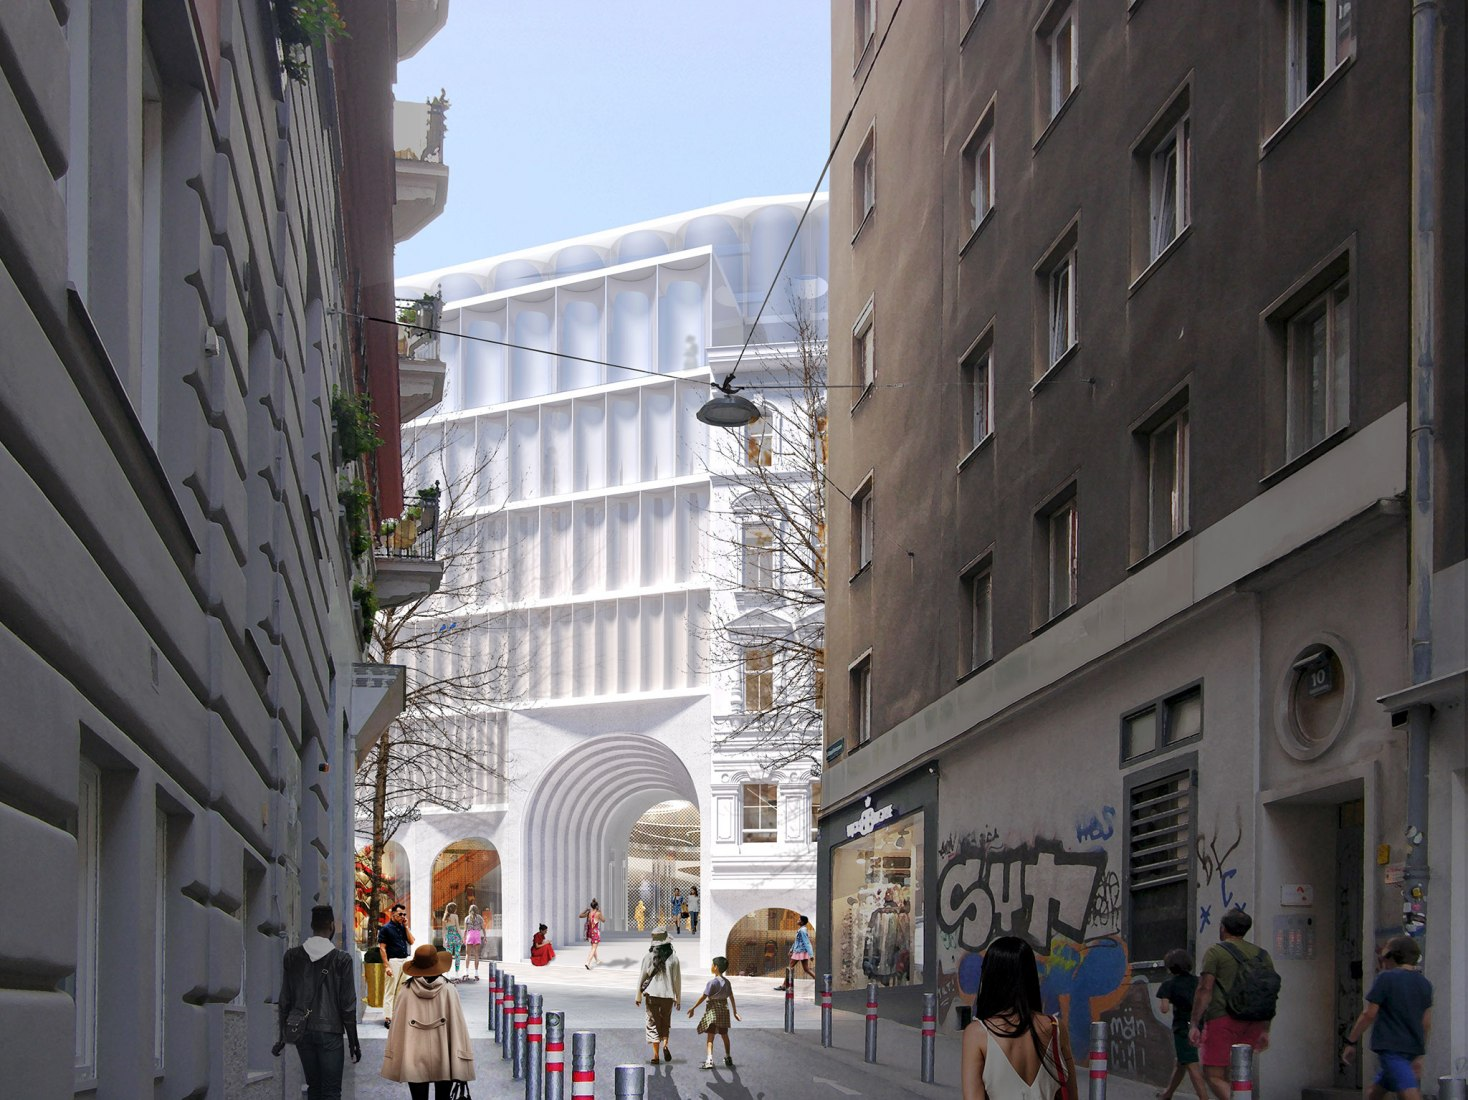 Rendering. New Kadewe Vienna Department Store by OMA. Image courtesy of OMA